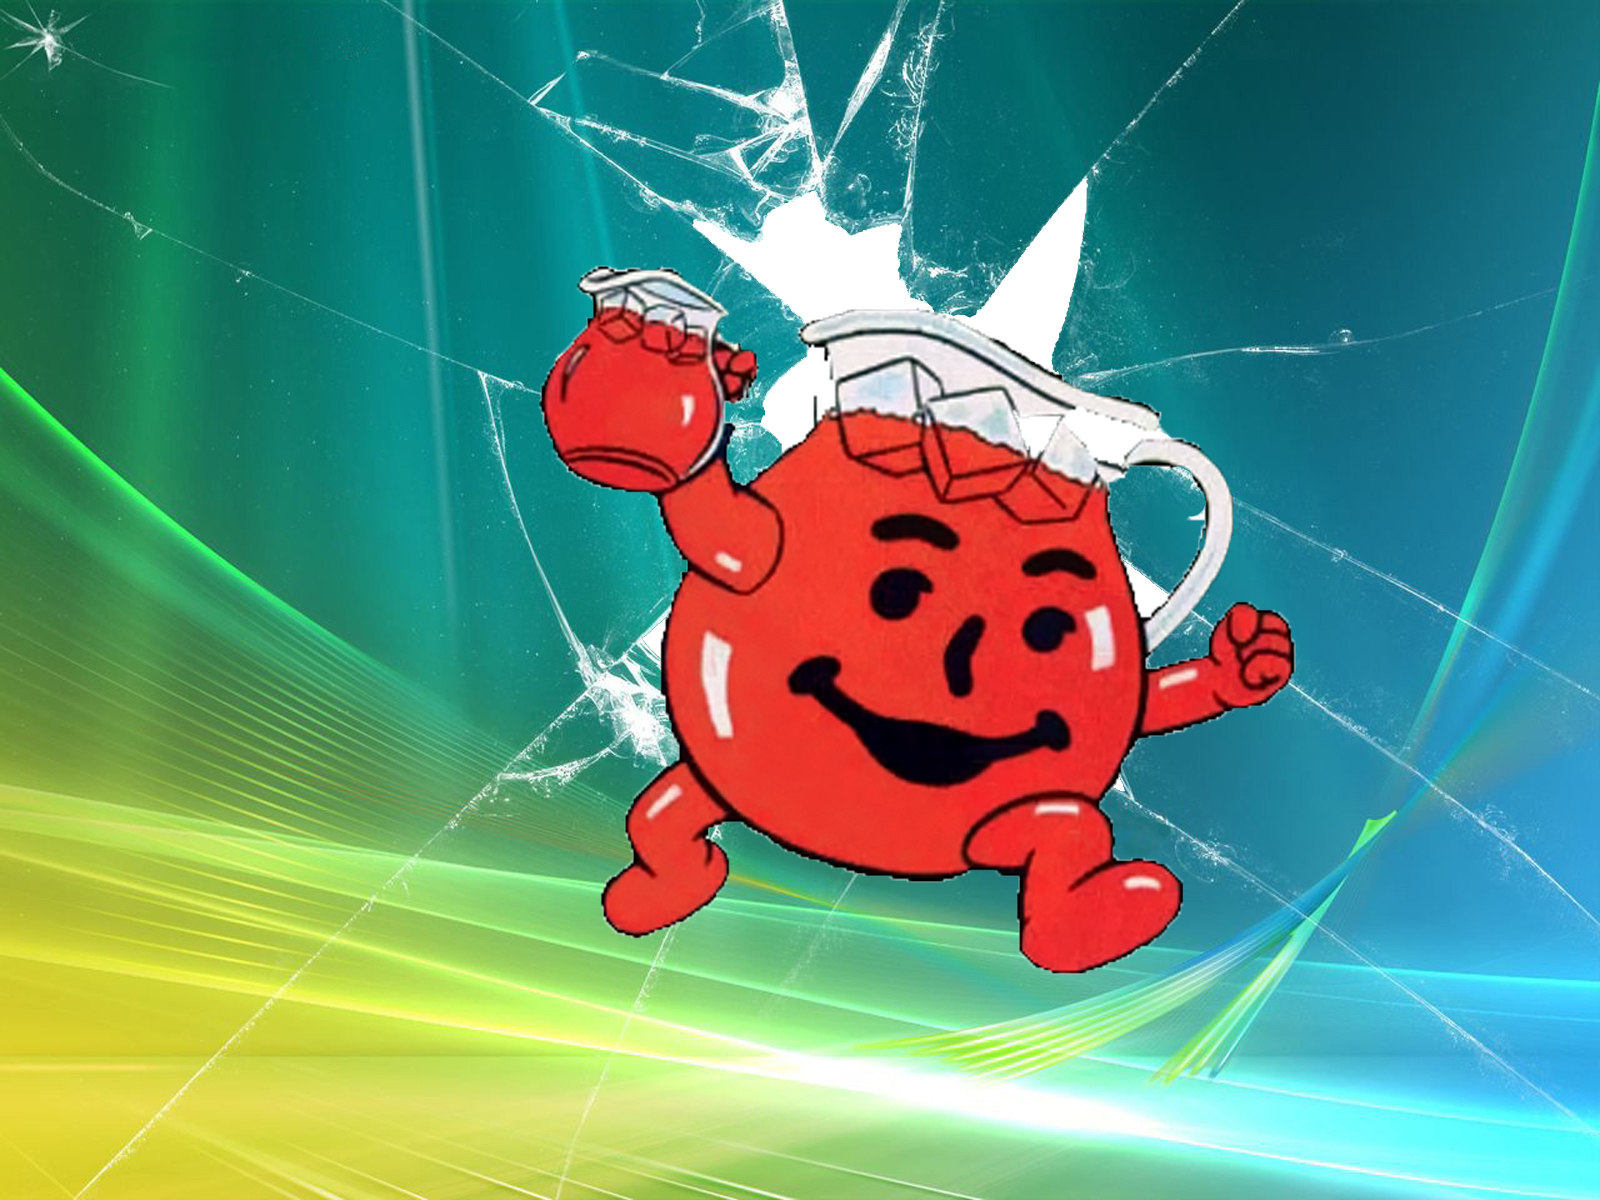 broken screen kool-aid beverages HD Wallpaper